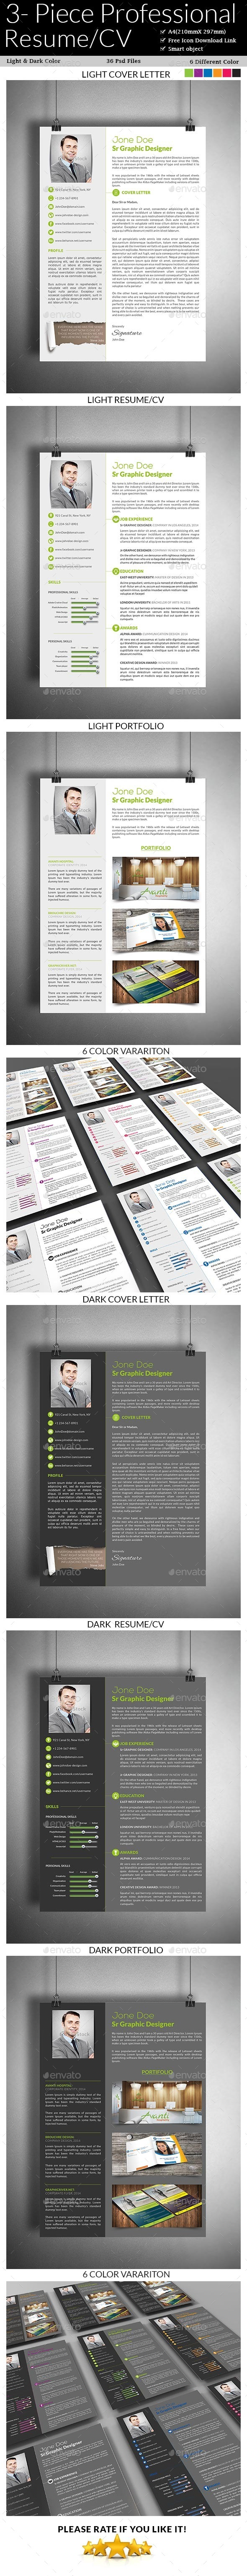 GraphicRiver 3- Piece Professional Resume CV 8795765